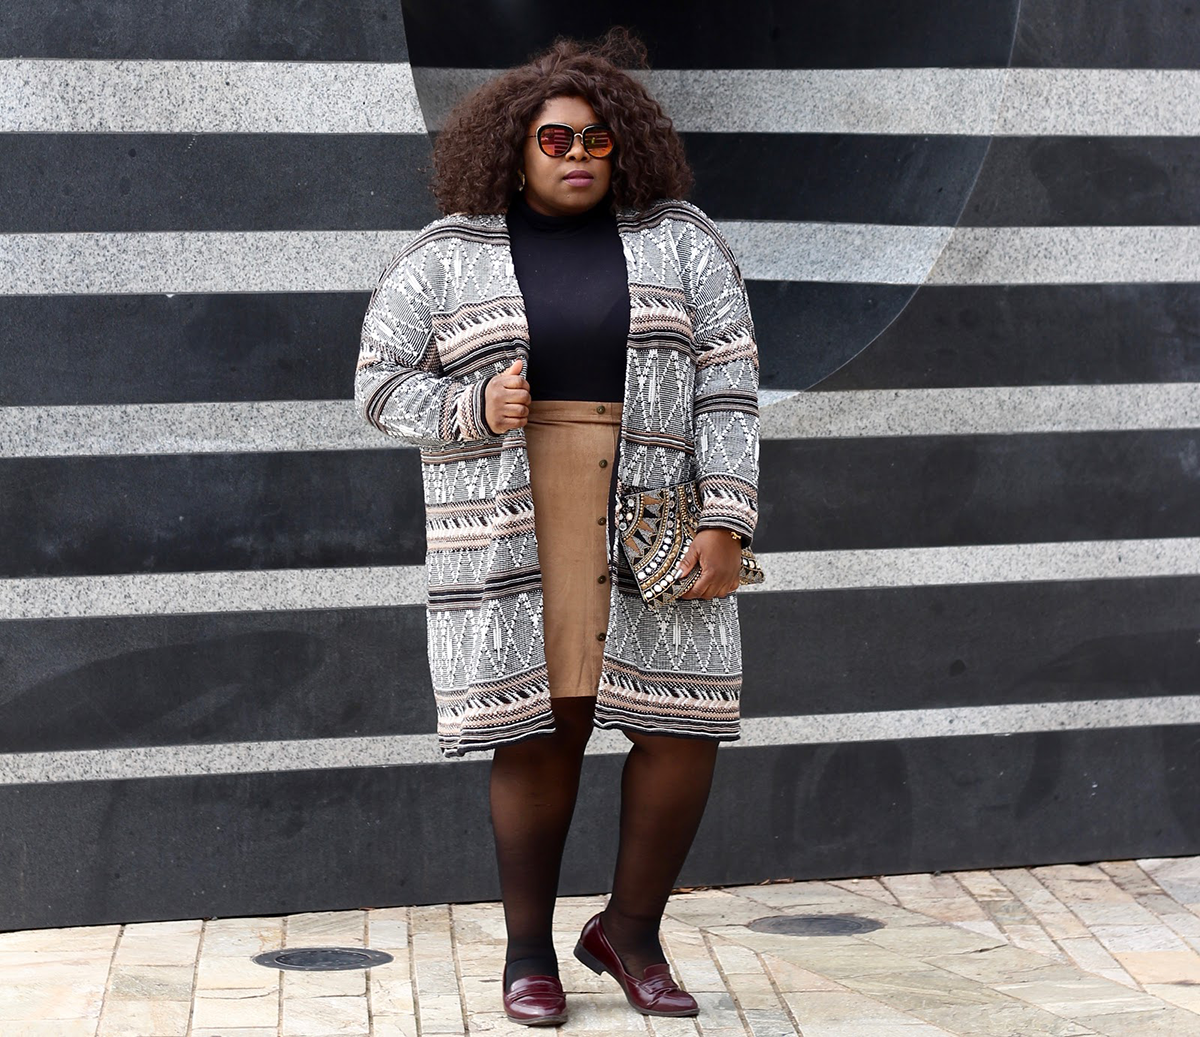 Turtleneck, polo neck, dress, jacket, button up skirt, curvy blogger, plus size, hourglass, how to wear, what to wear, ways to wear, 3 ways to wear, body shape, pear shape, personal stylist, online stylist